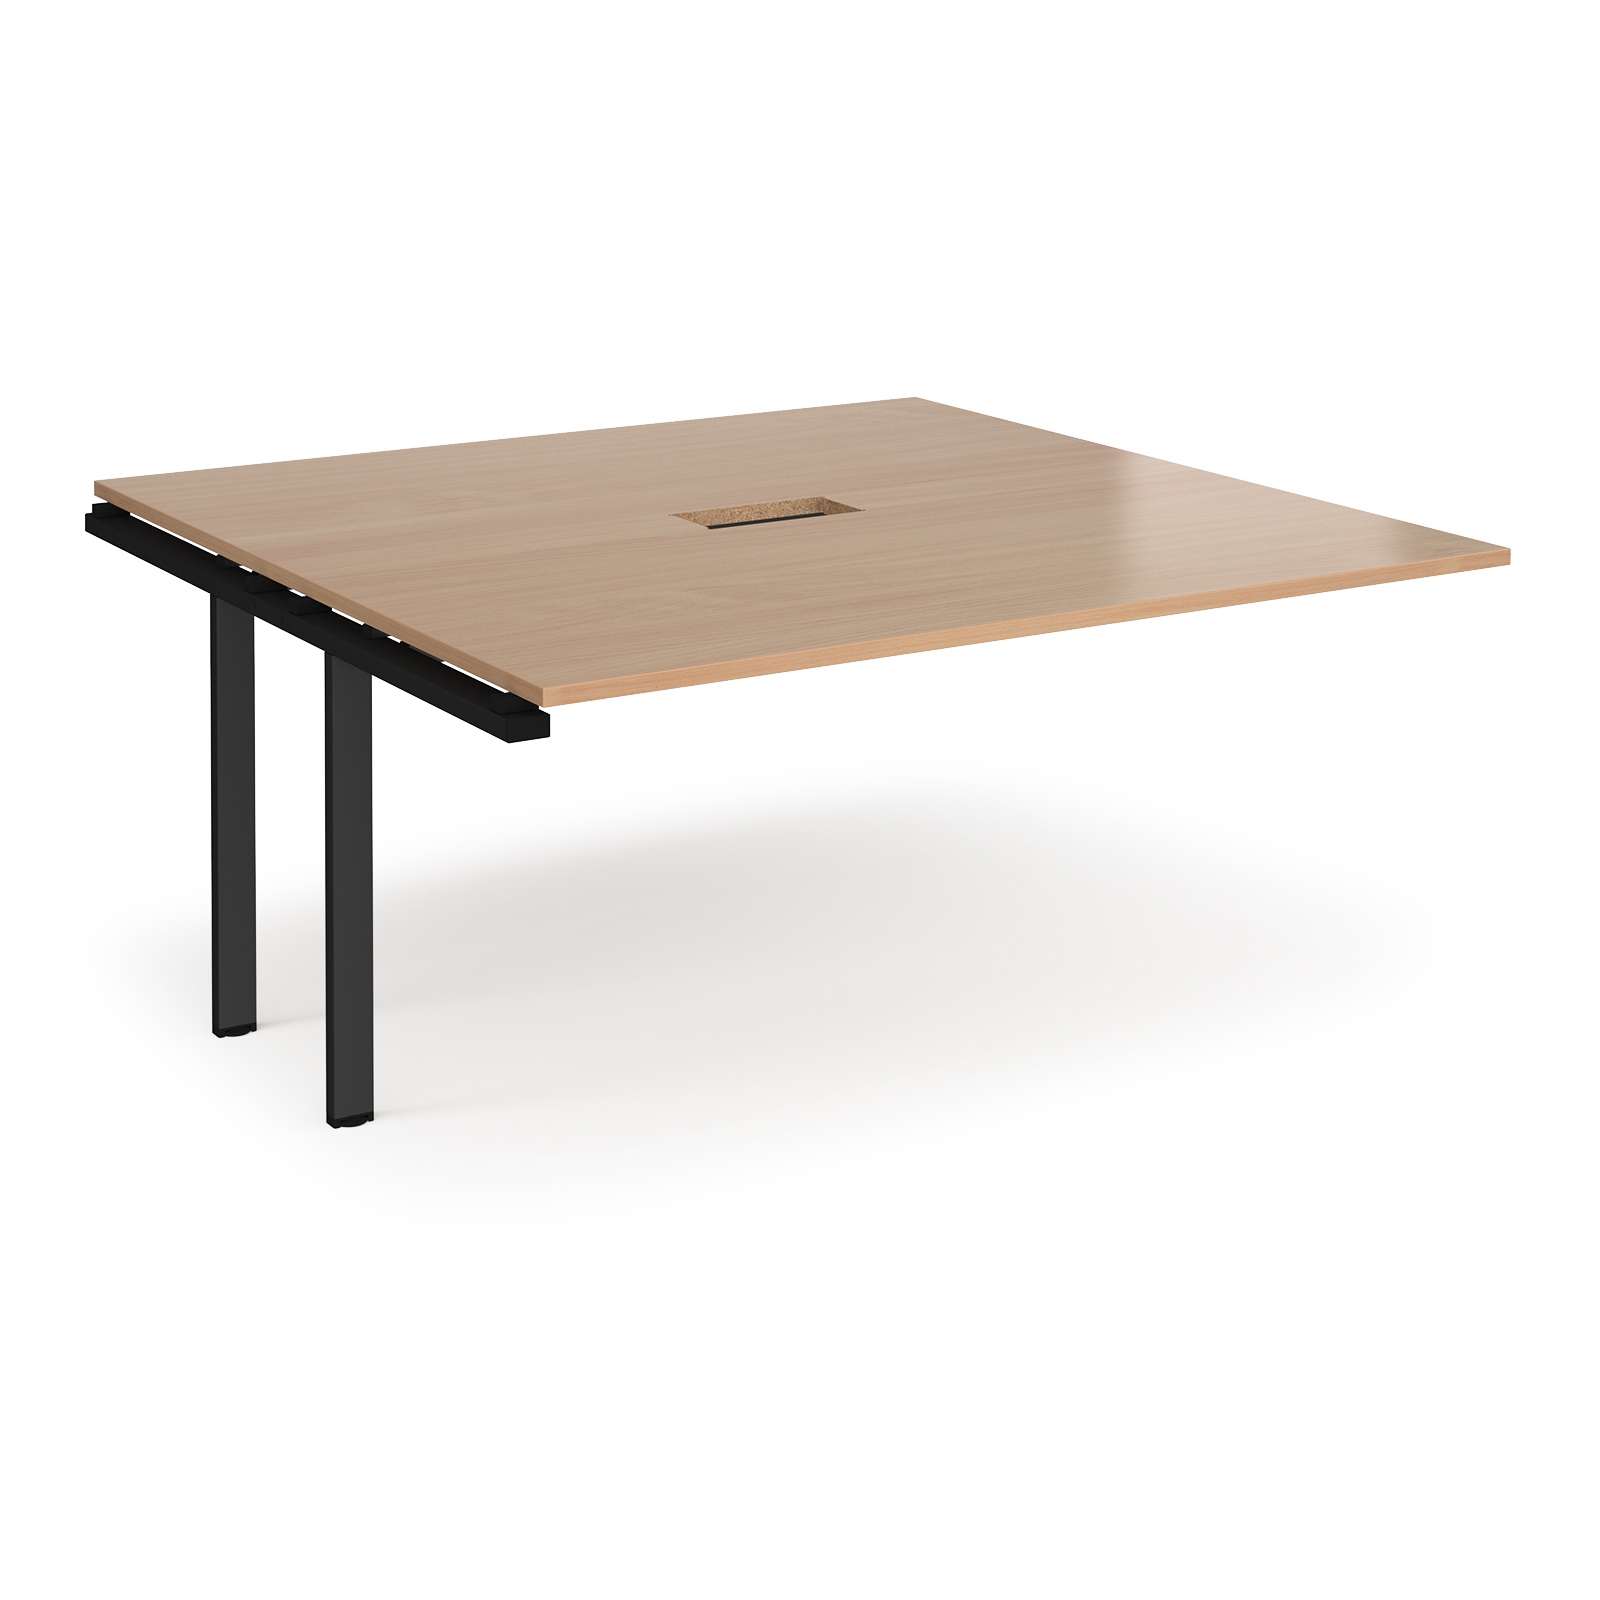 Boardroom / Meeting Adapt square power ready add-on boardroom table